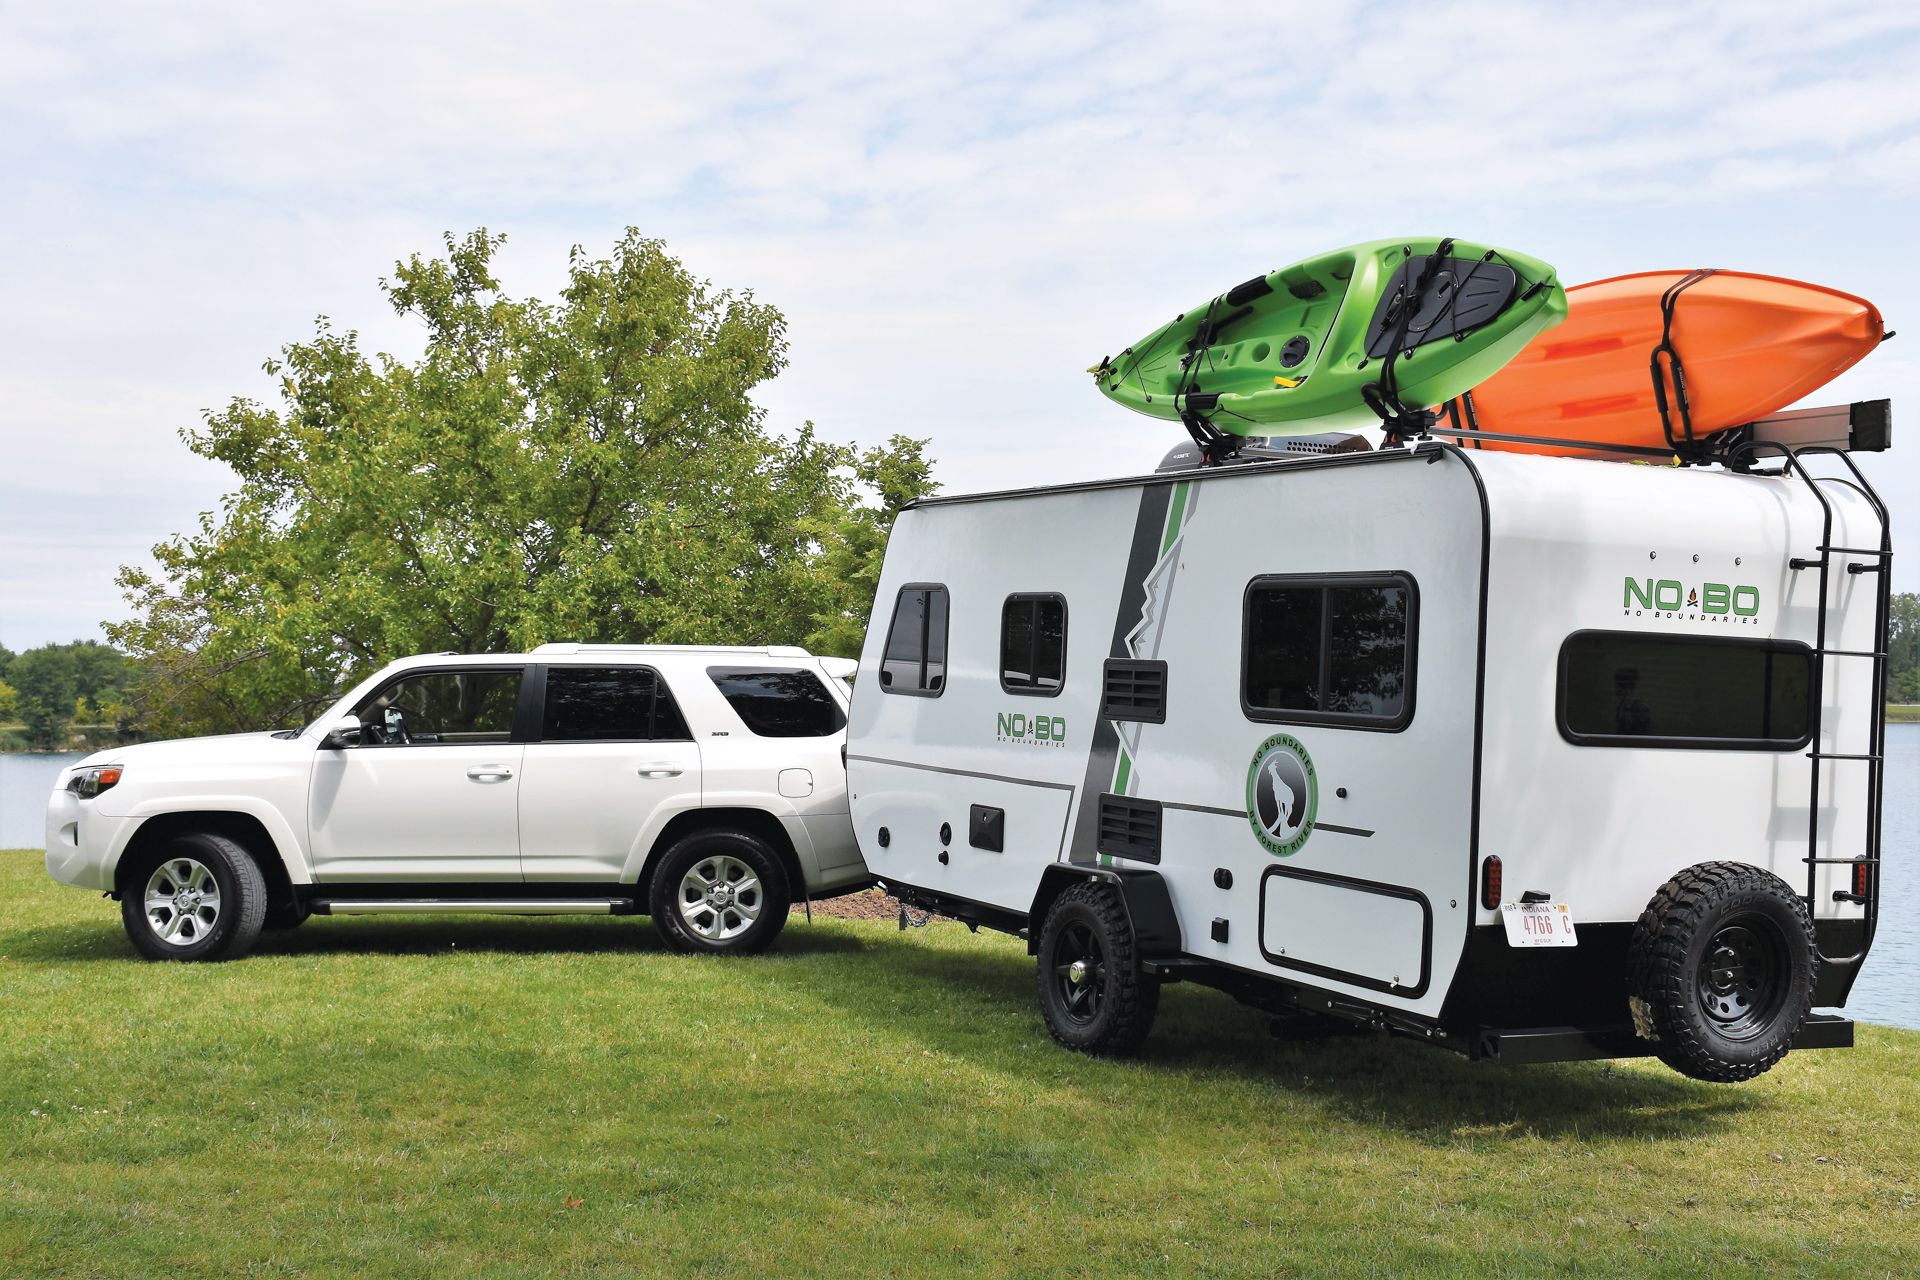 The Brand New Line Of No Boundaries Travel Trailers From Forest River Are An Adventurers Dream With Sturdy Lightweight Construction And A Range